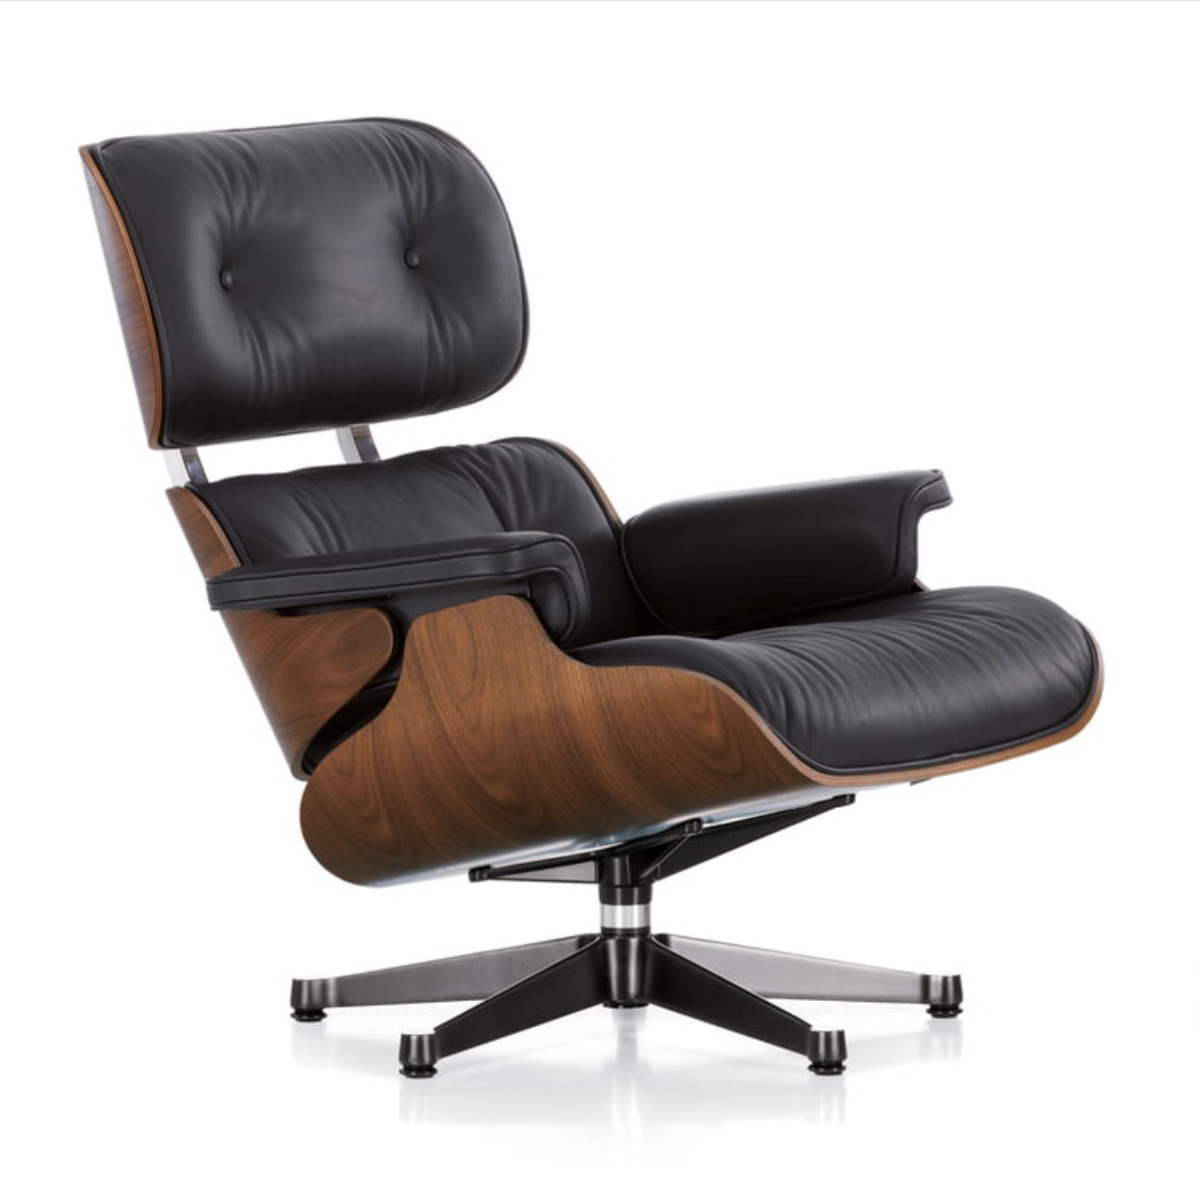 If you don't already, get to know the Eames  Lounge  chair. It's been oft-replicated and has had more than a few film   cameos  . It's basically a celebrity in the furniture world.